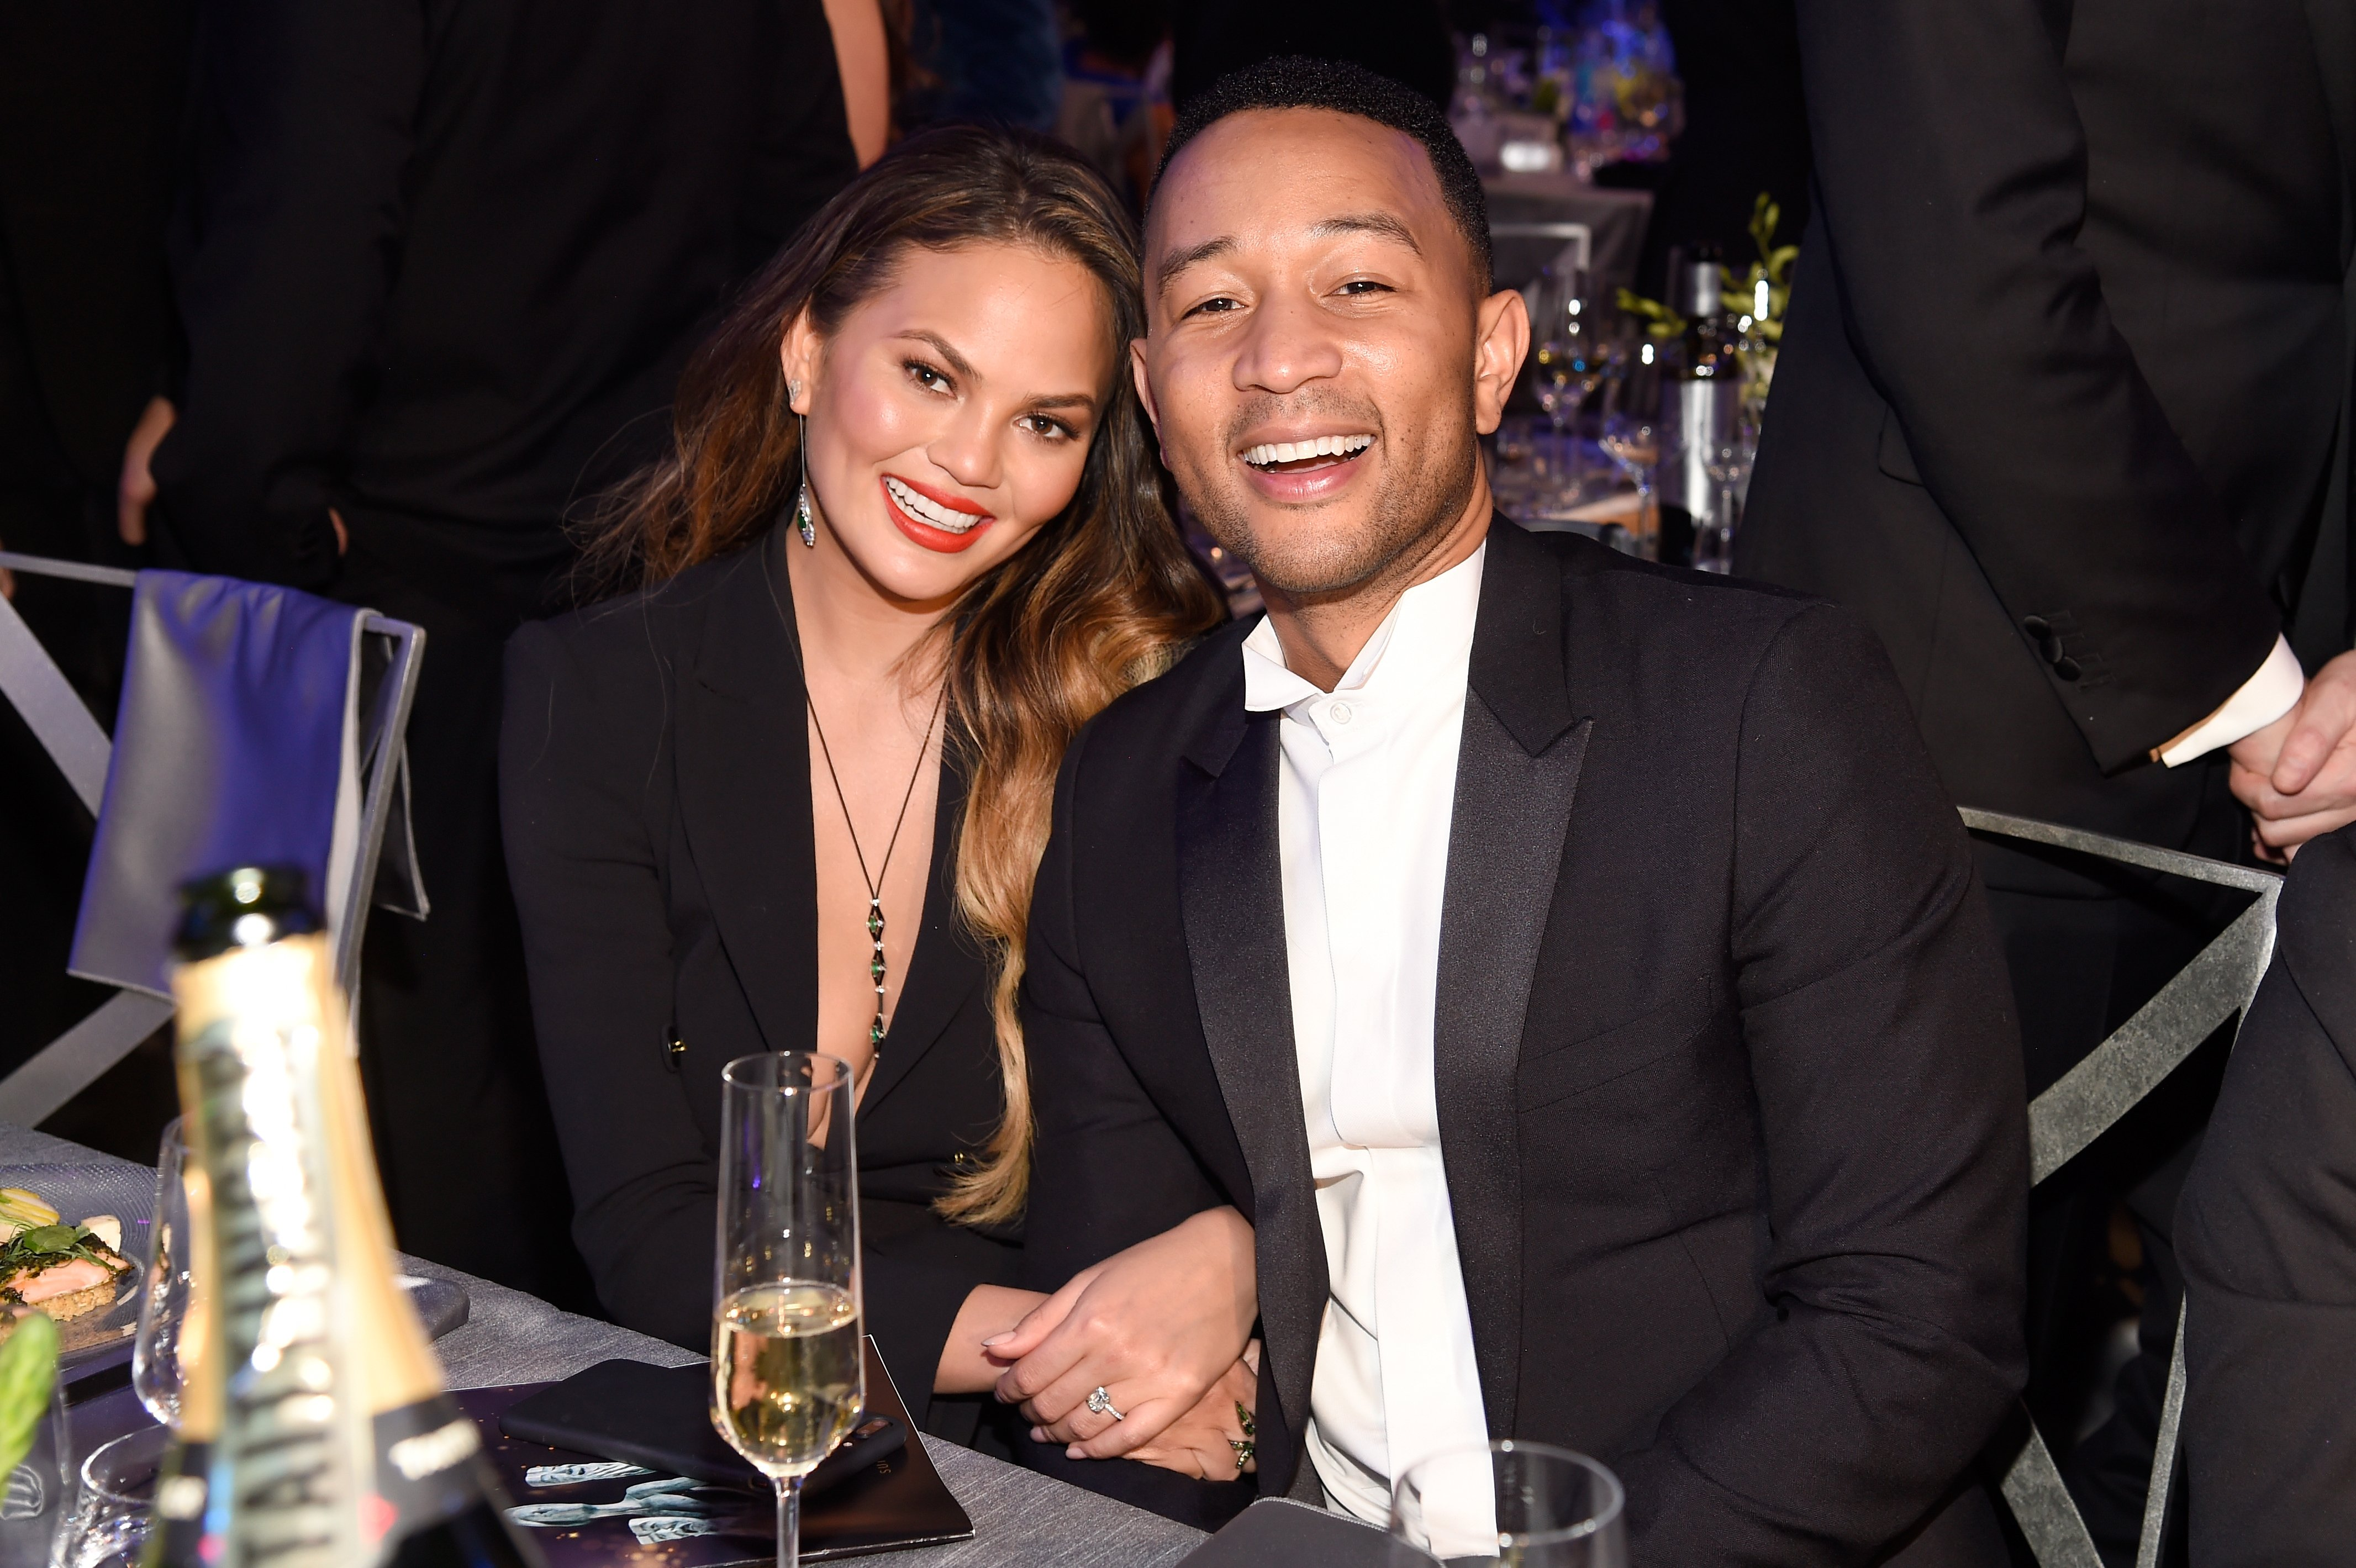 Chrissy Teigen and John Legend attend sthe Annual Screen Actors Guild Awards in Los Angeles on January 29, 2017 | Photo: Getty Images